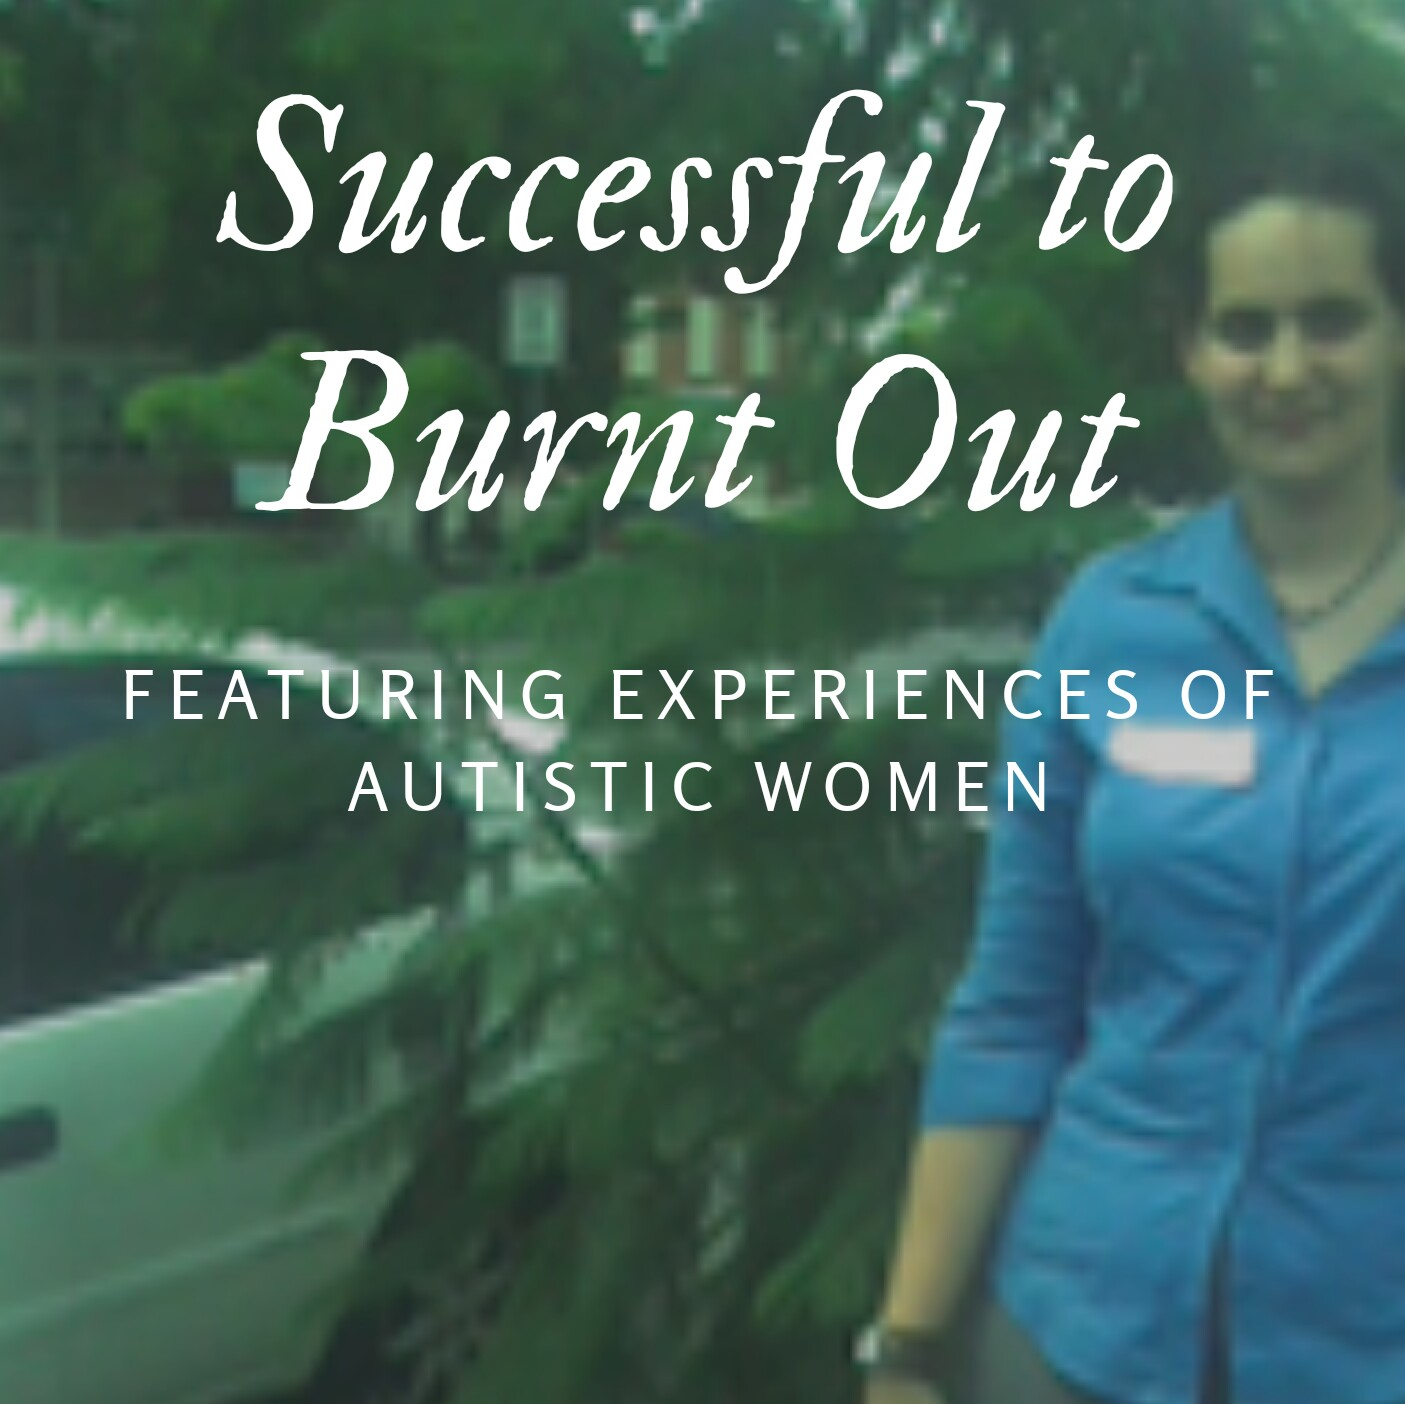 Chapter 1: Being Successful (Successful to Burnt Out)